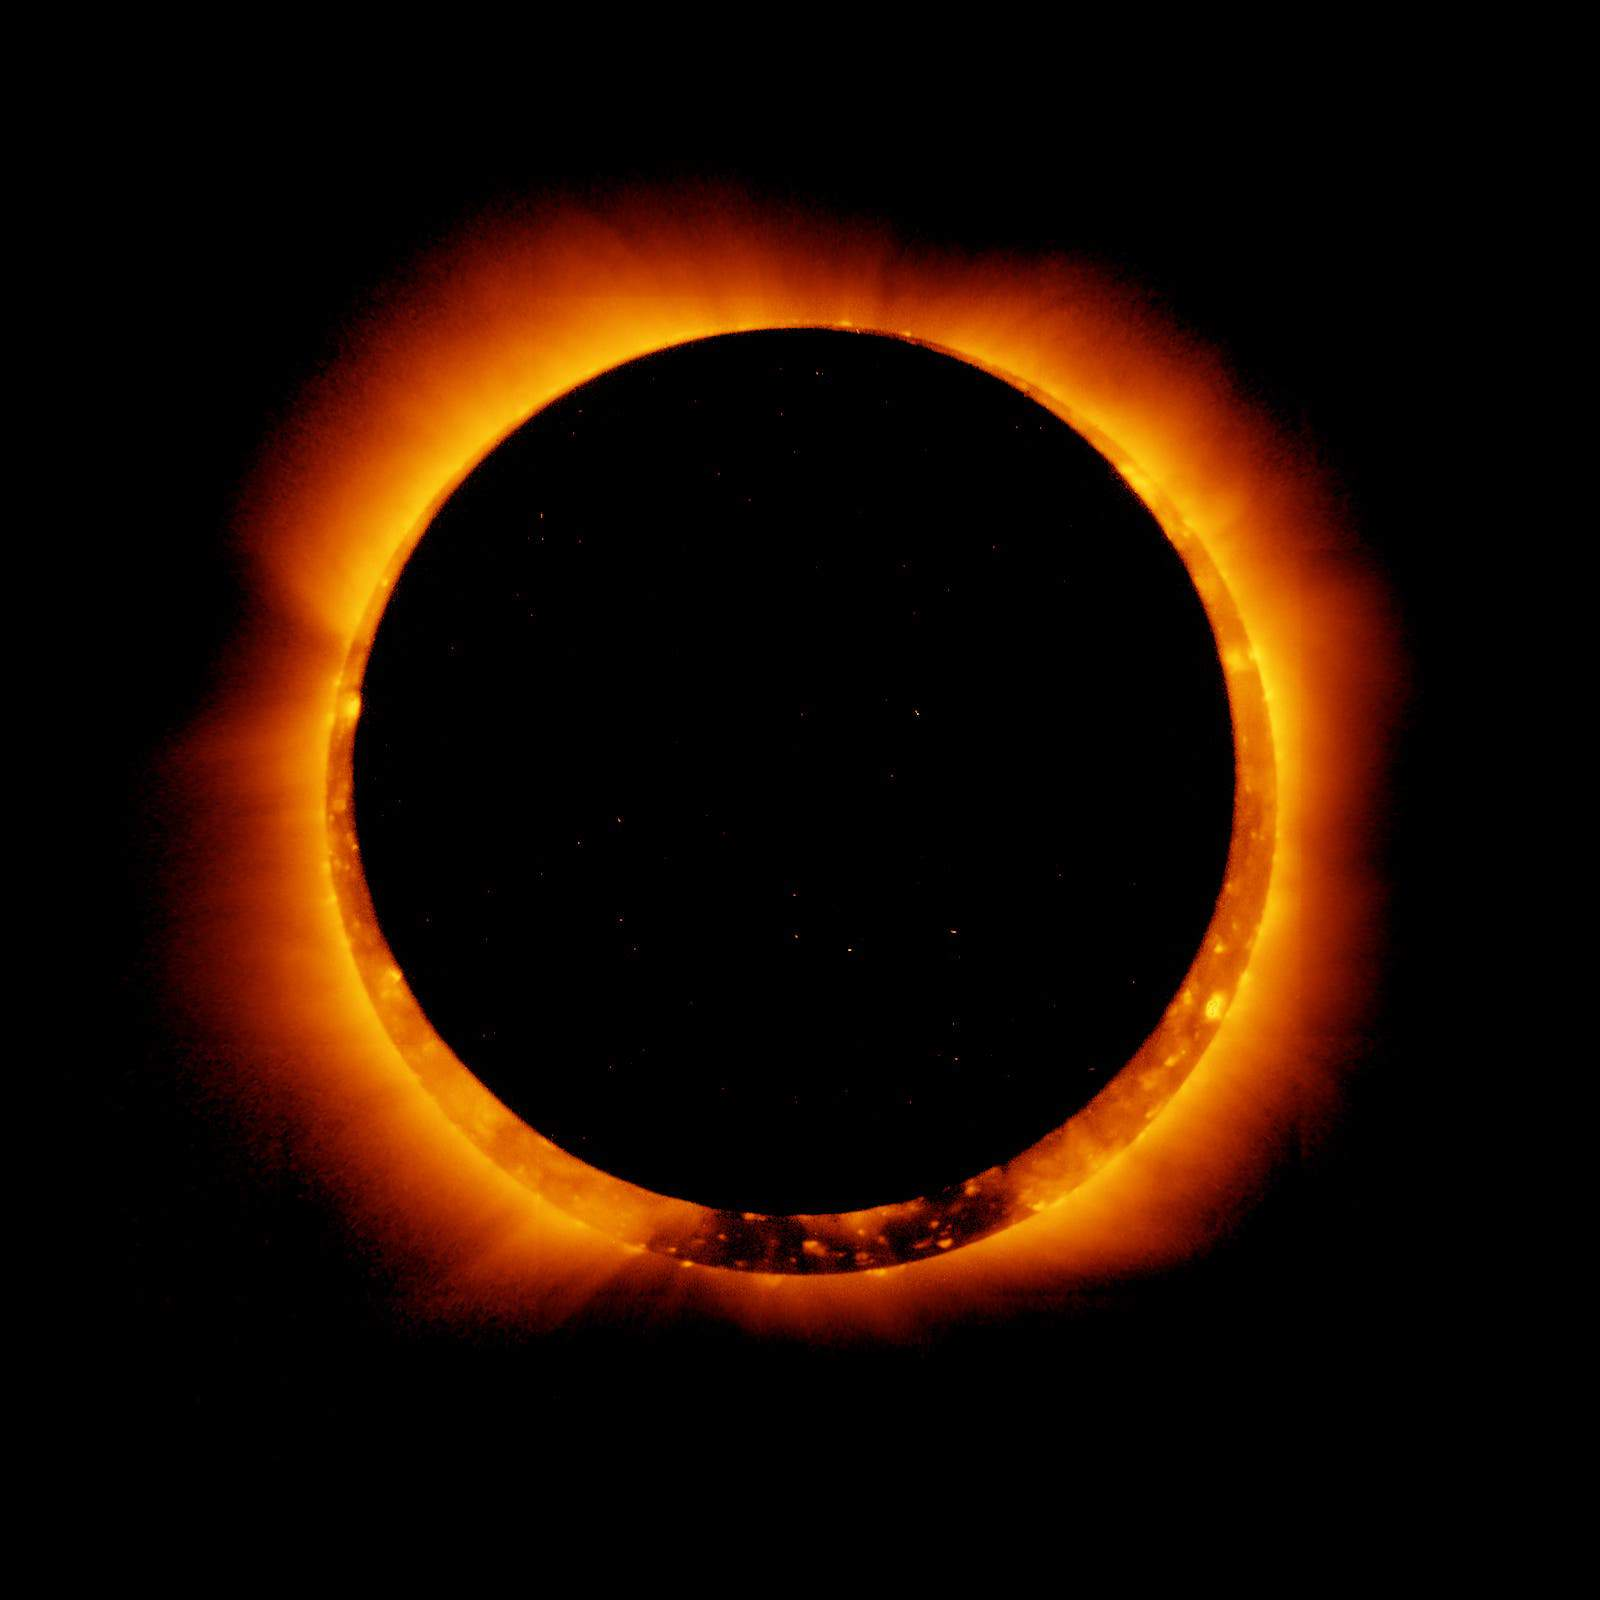 How to See the Next Solar Eclipse: July 2, 2019 ⋆ Space ...